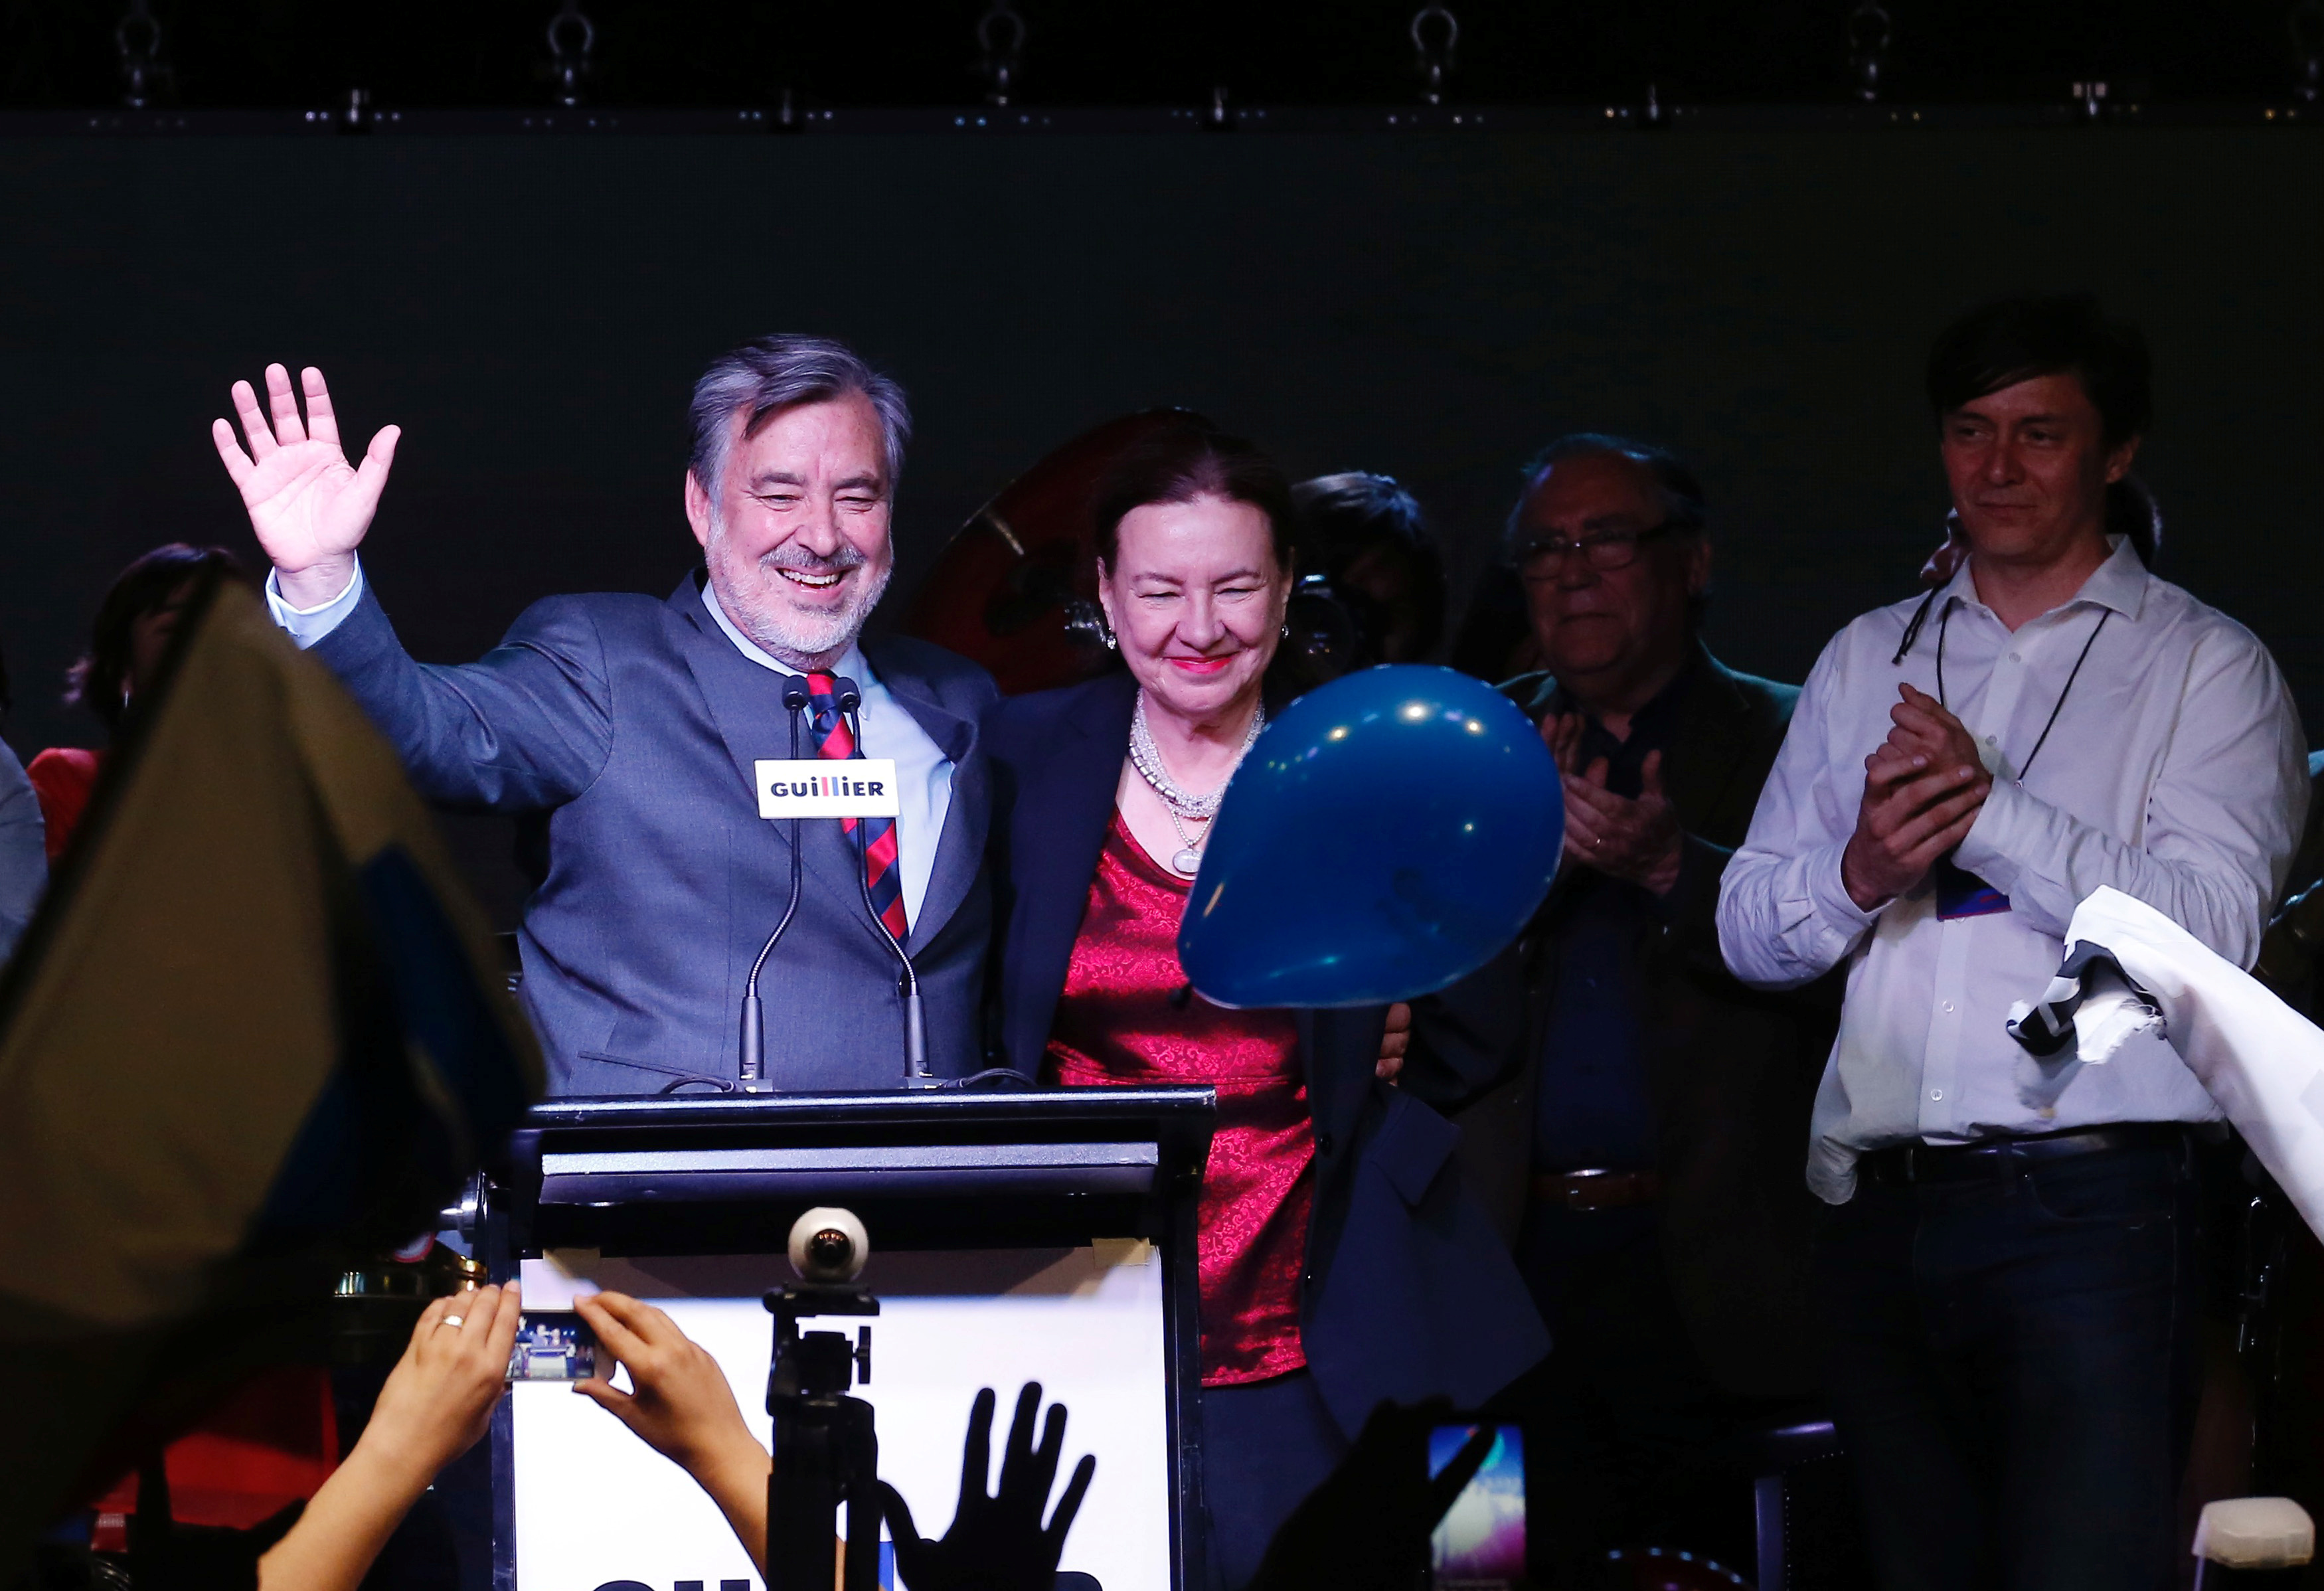 2017 11 20T013531Z 1420239701 RC128ADB2600 RTRMADP 3 CHILE ELECTION